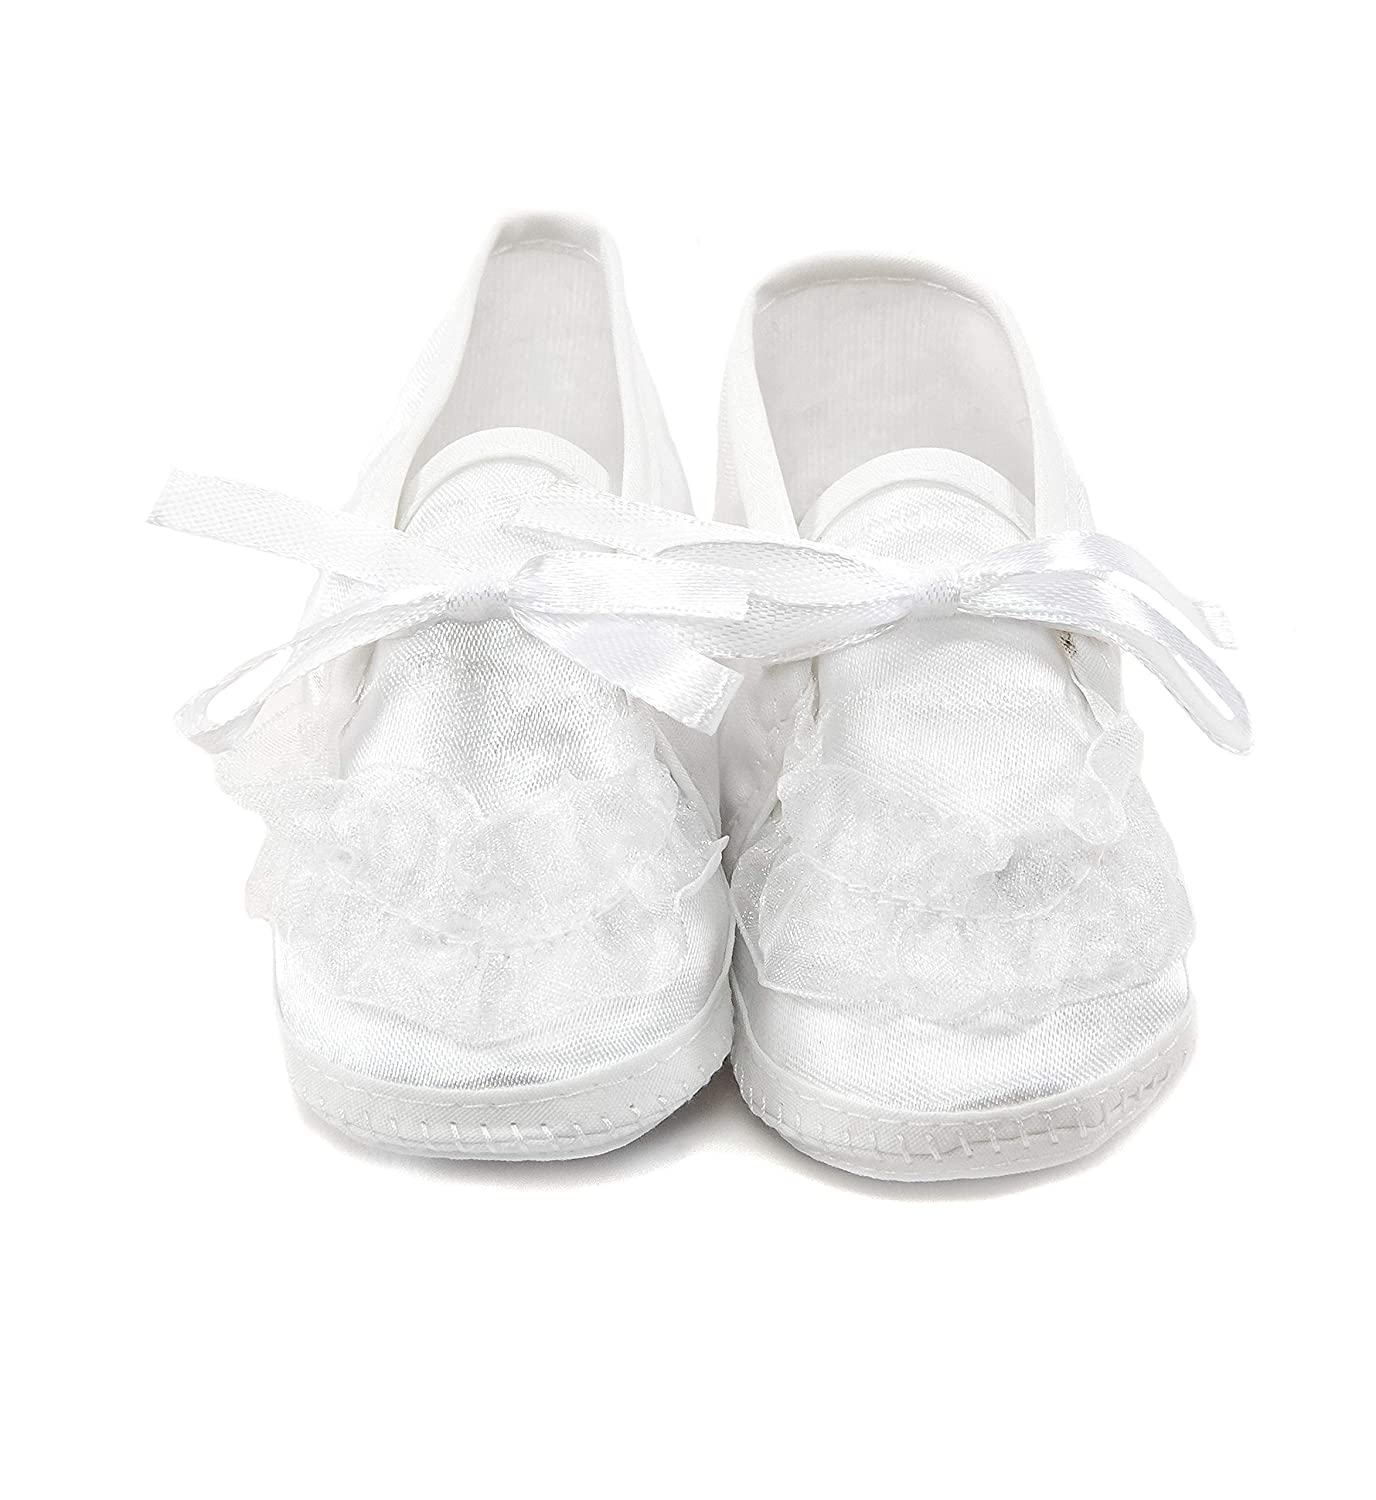 Simply Gloryous White Lace Booties